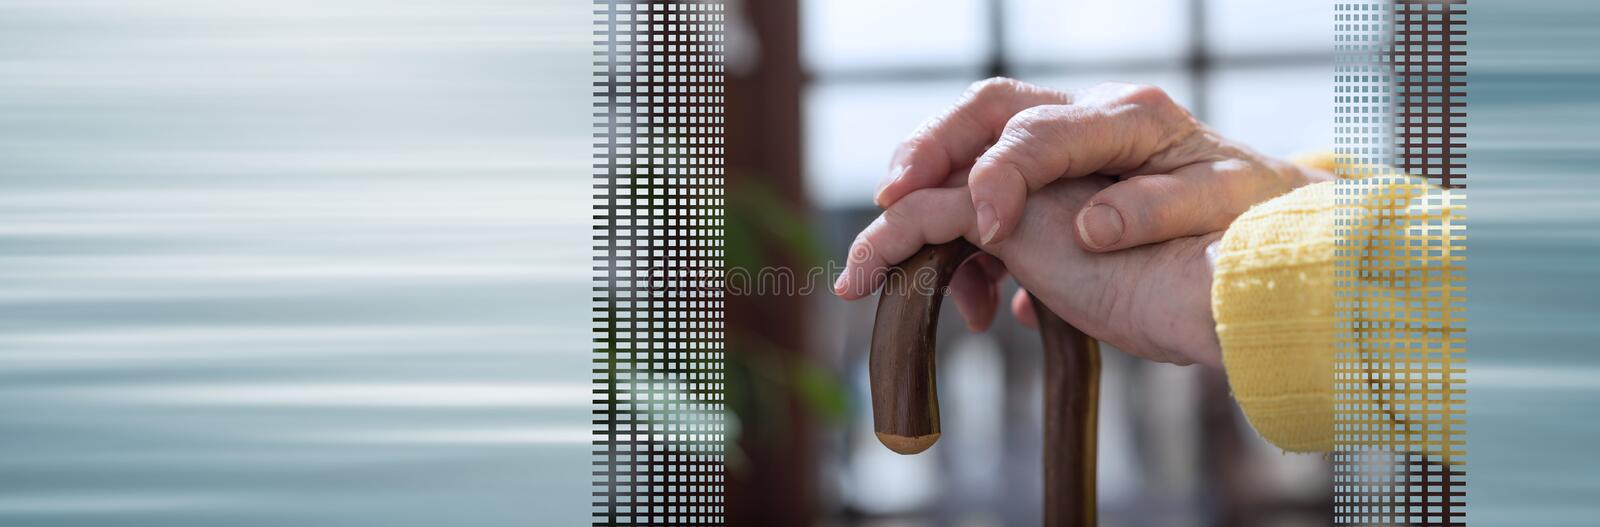 Old woman hands holding a cane. panoramic banner. Old woman hands holding a walking cane. panoramic banner royalty free stock images